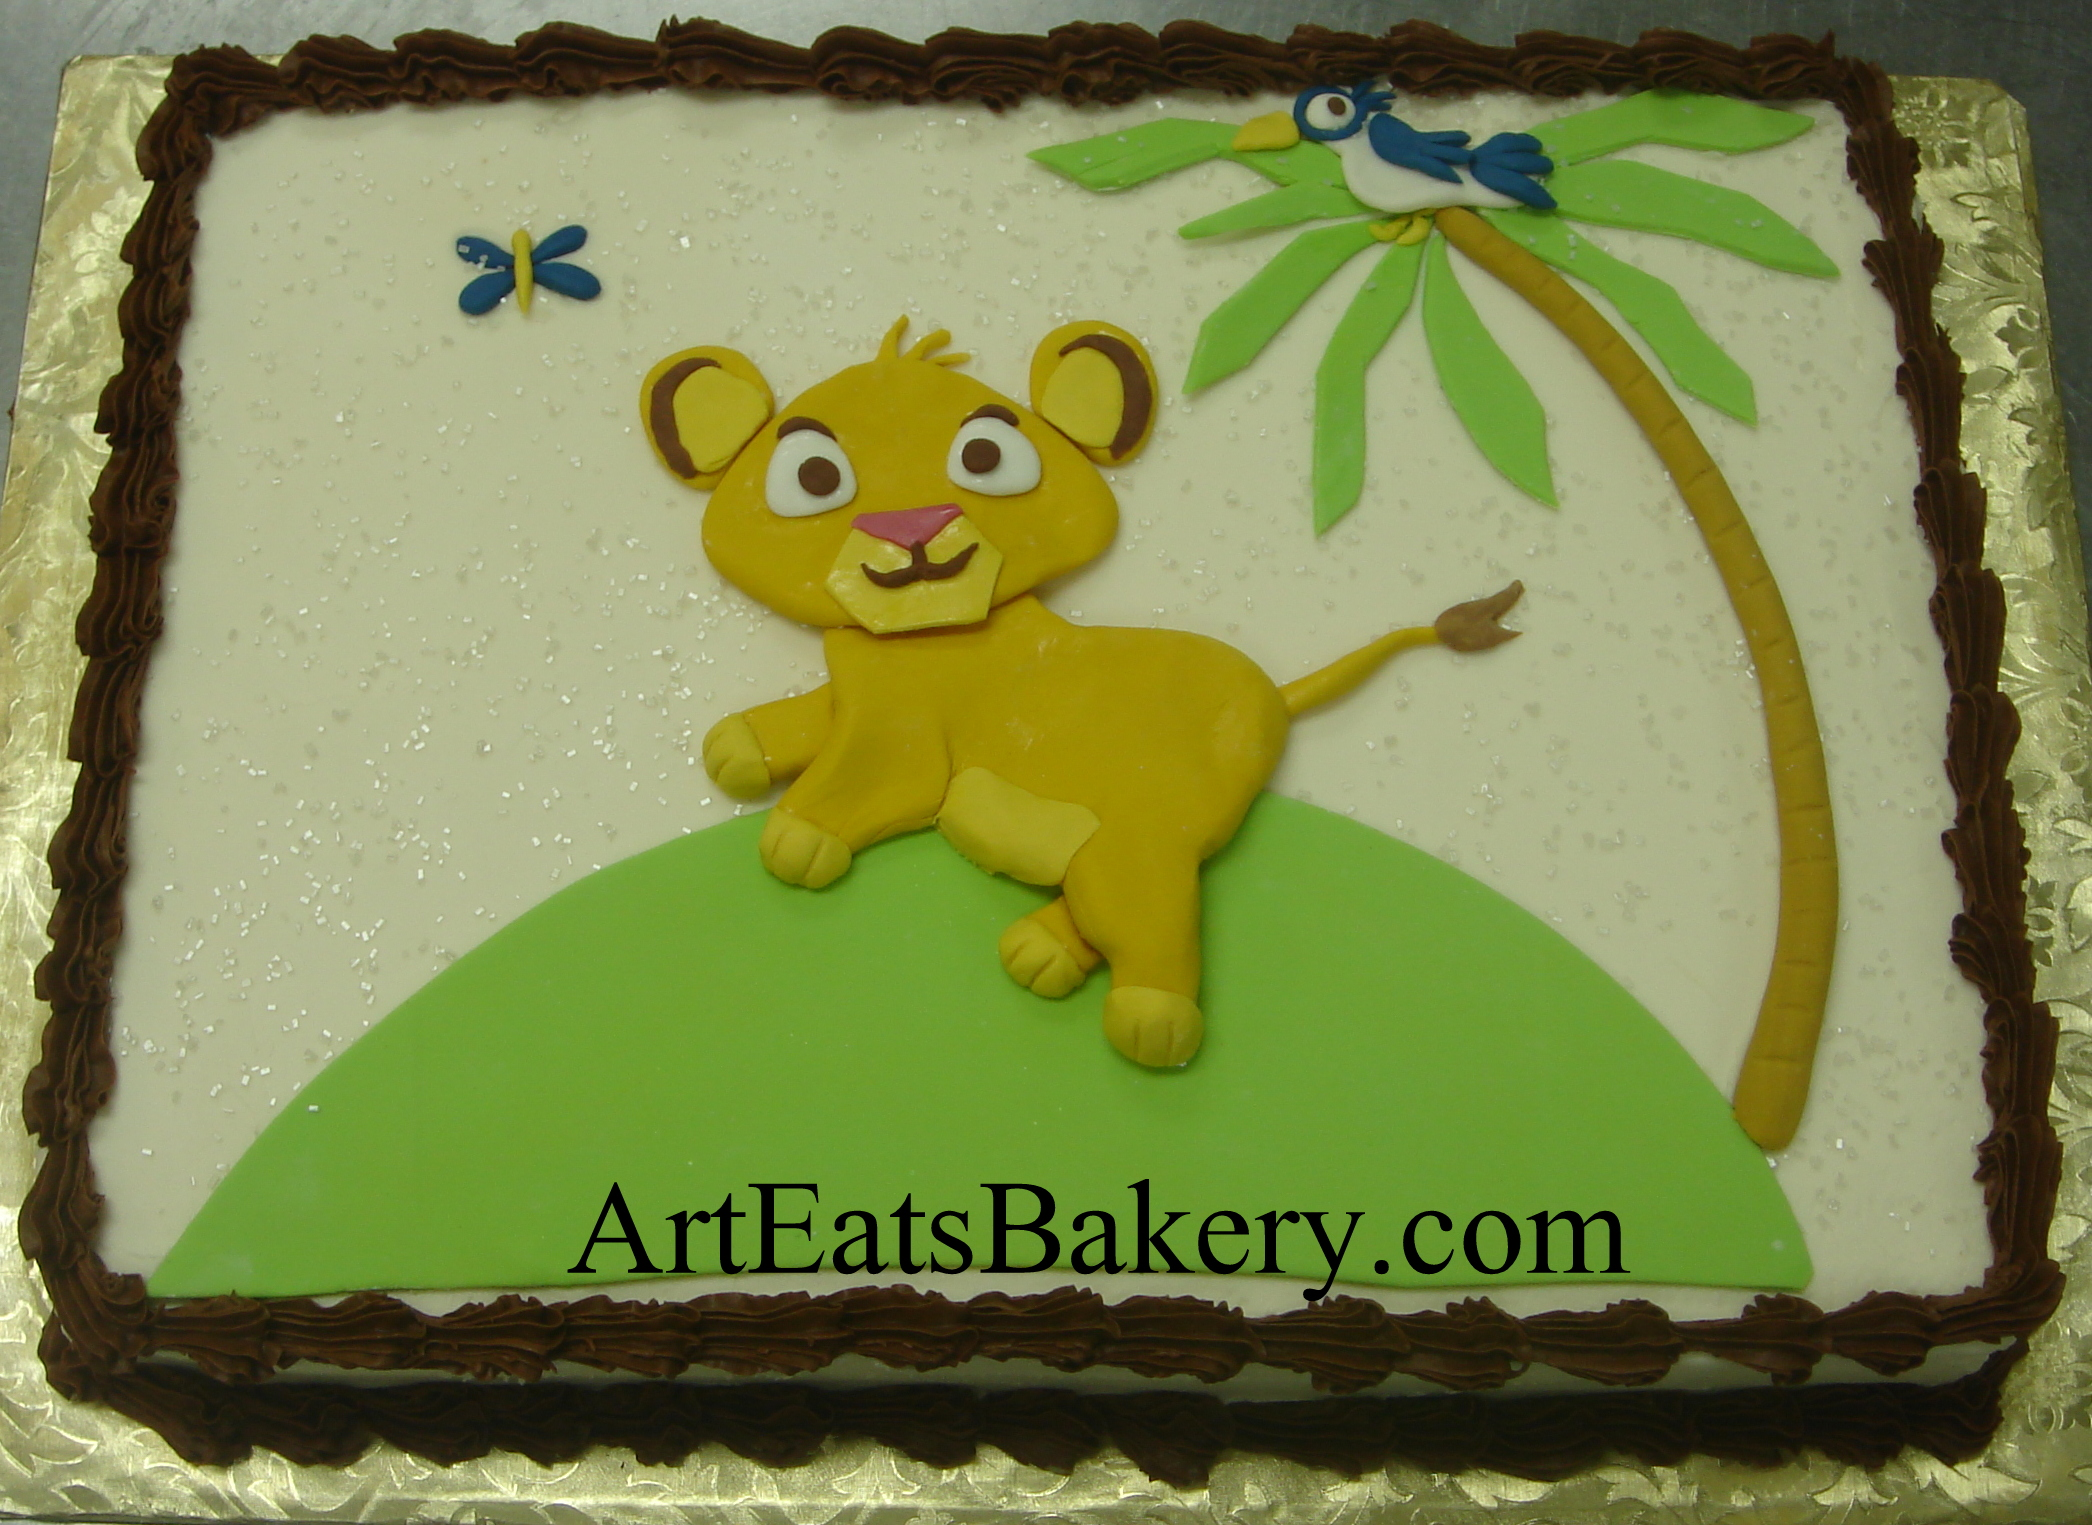 Little Lion King custom baby shower cake desgn with palm tree, bird and butterfly.jpg